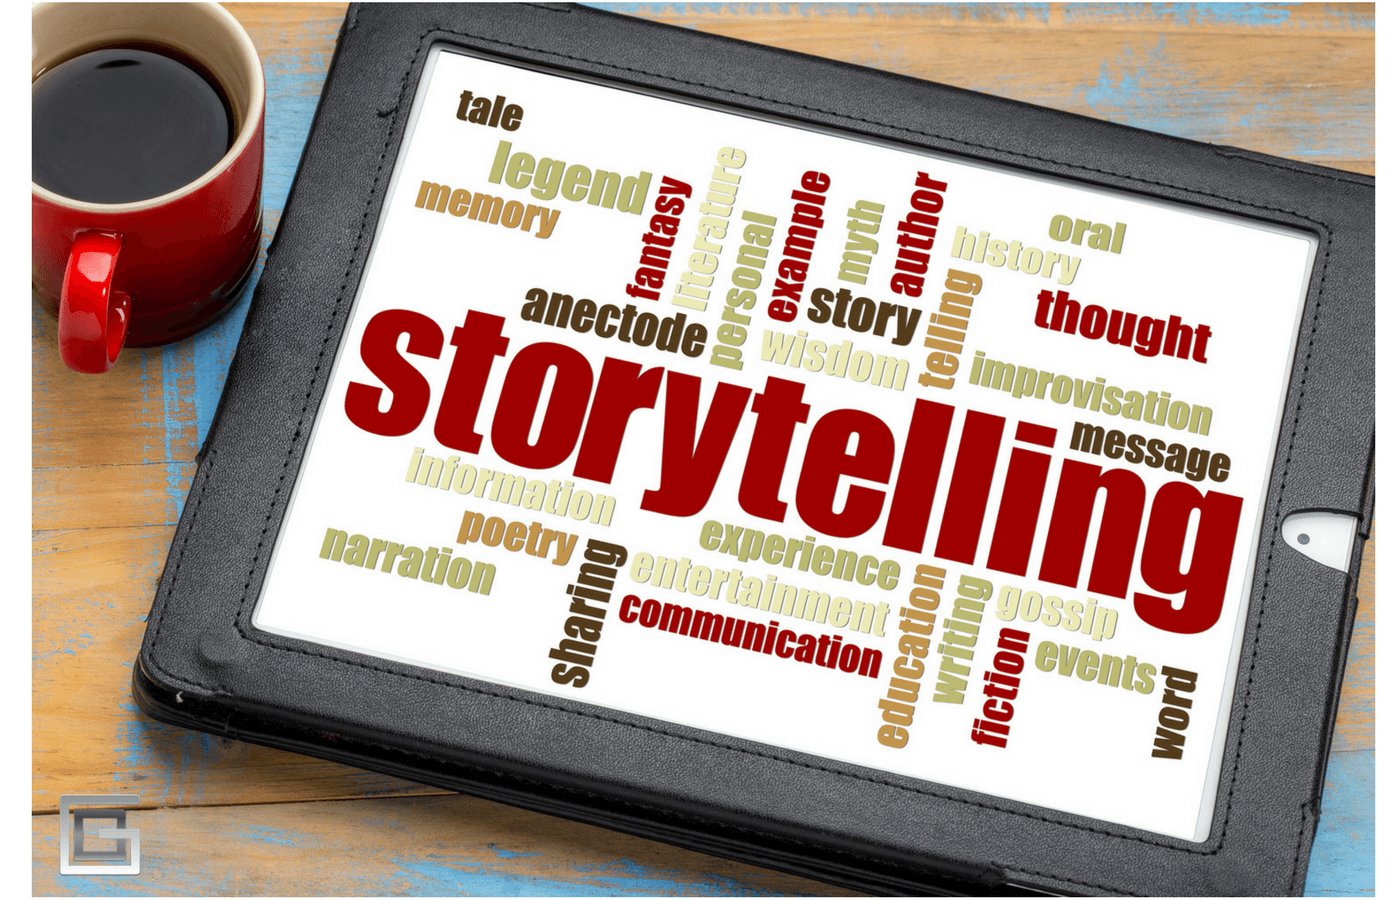 Storytelling is one effective way to approach writing an email